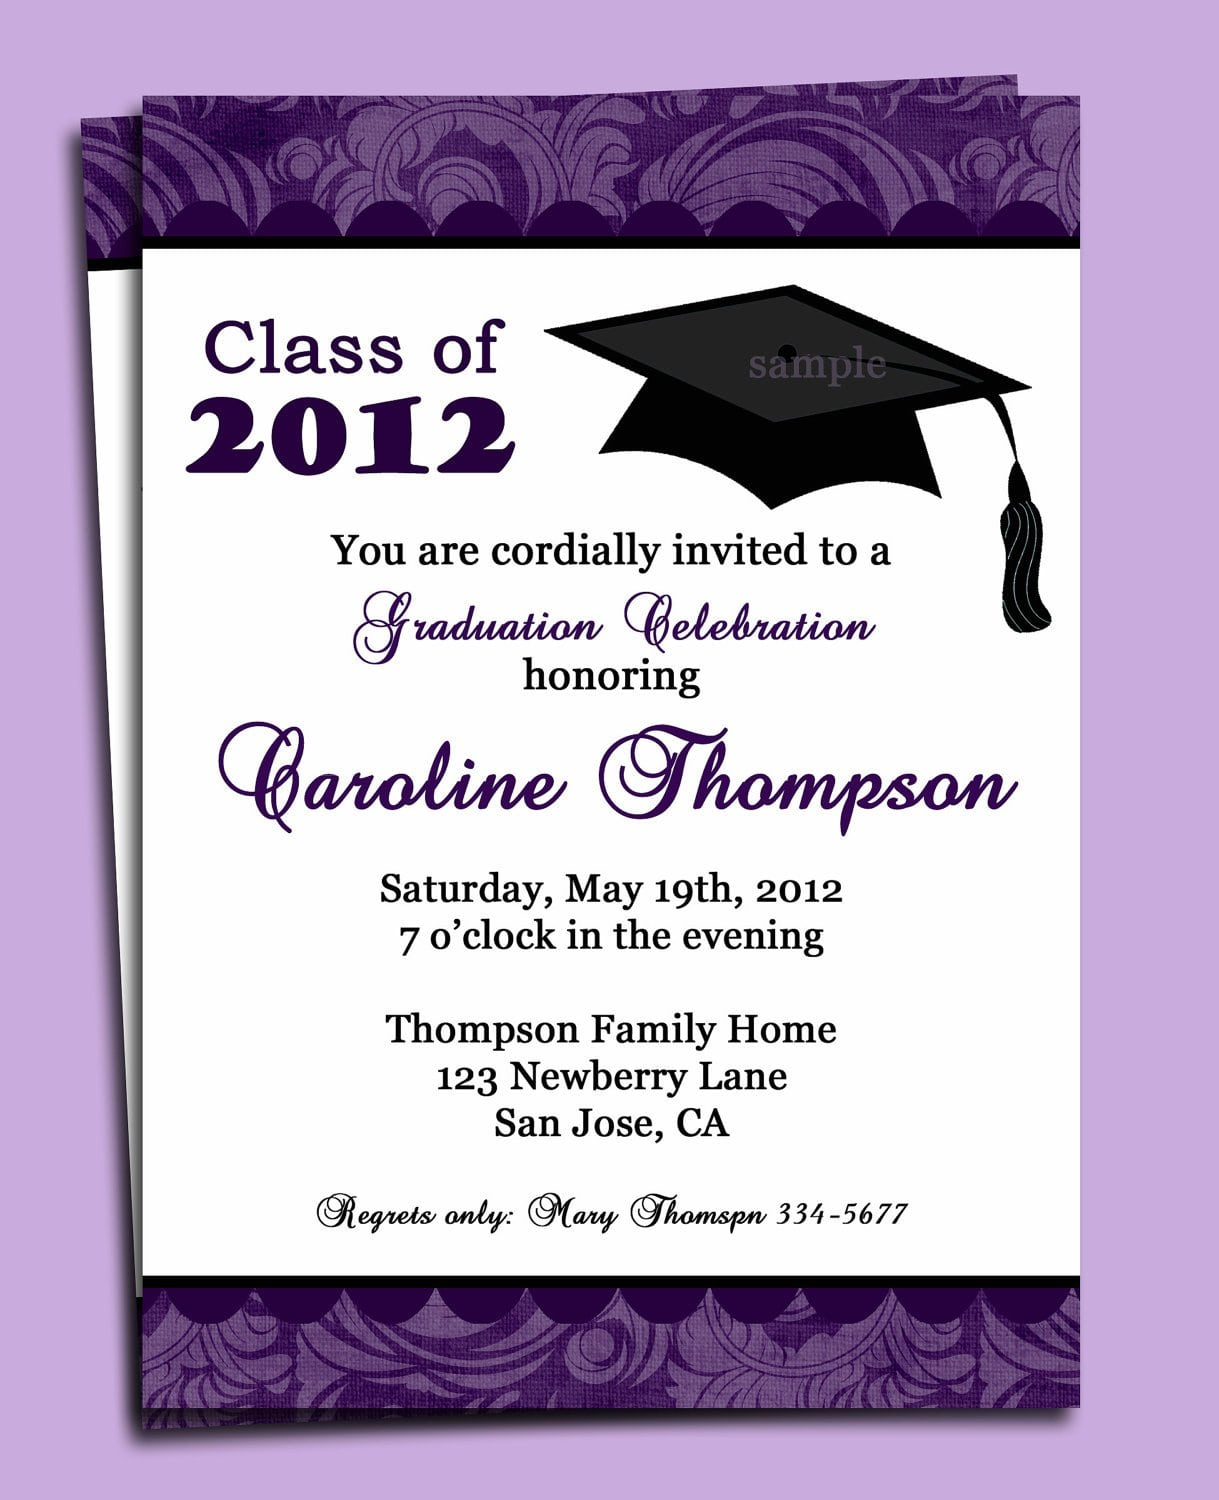 Examples Of Graduation Invitations can inspire you to create best invitation template